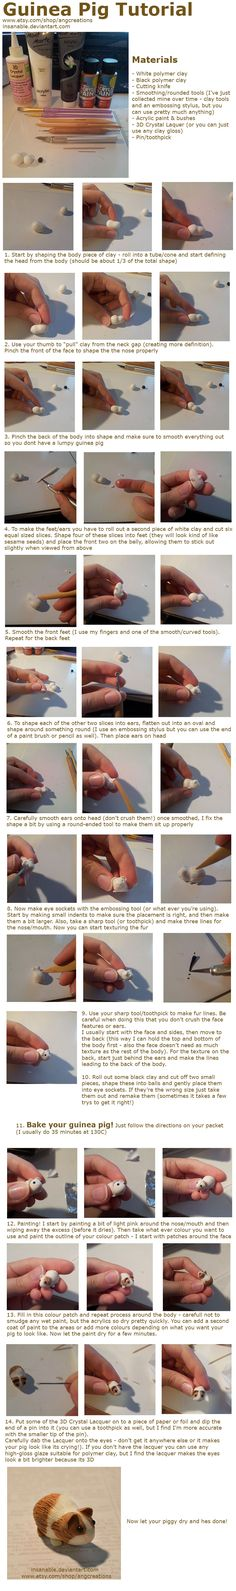 Guinea Pig Tutorial by insanable.deviantart.com on @deviantART